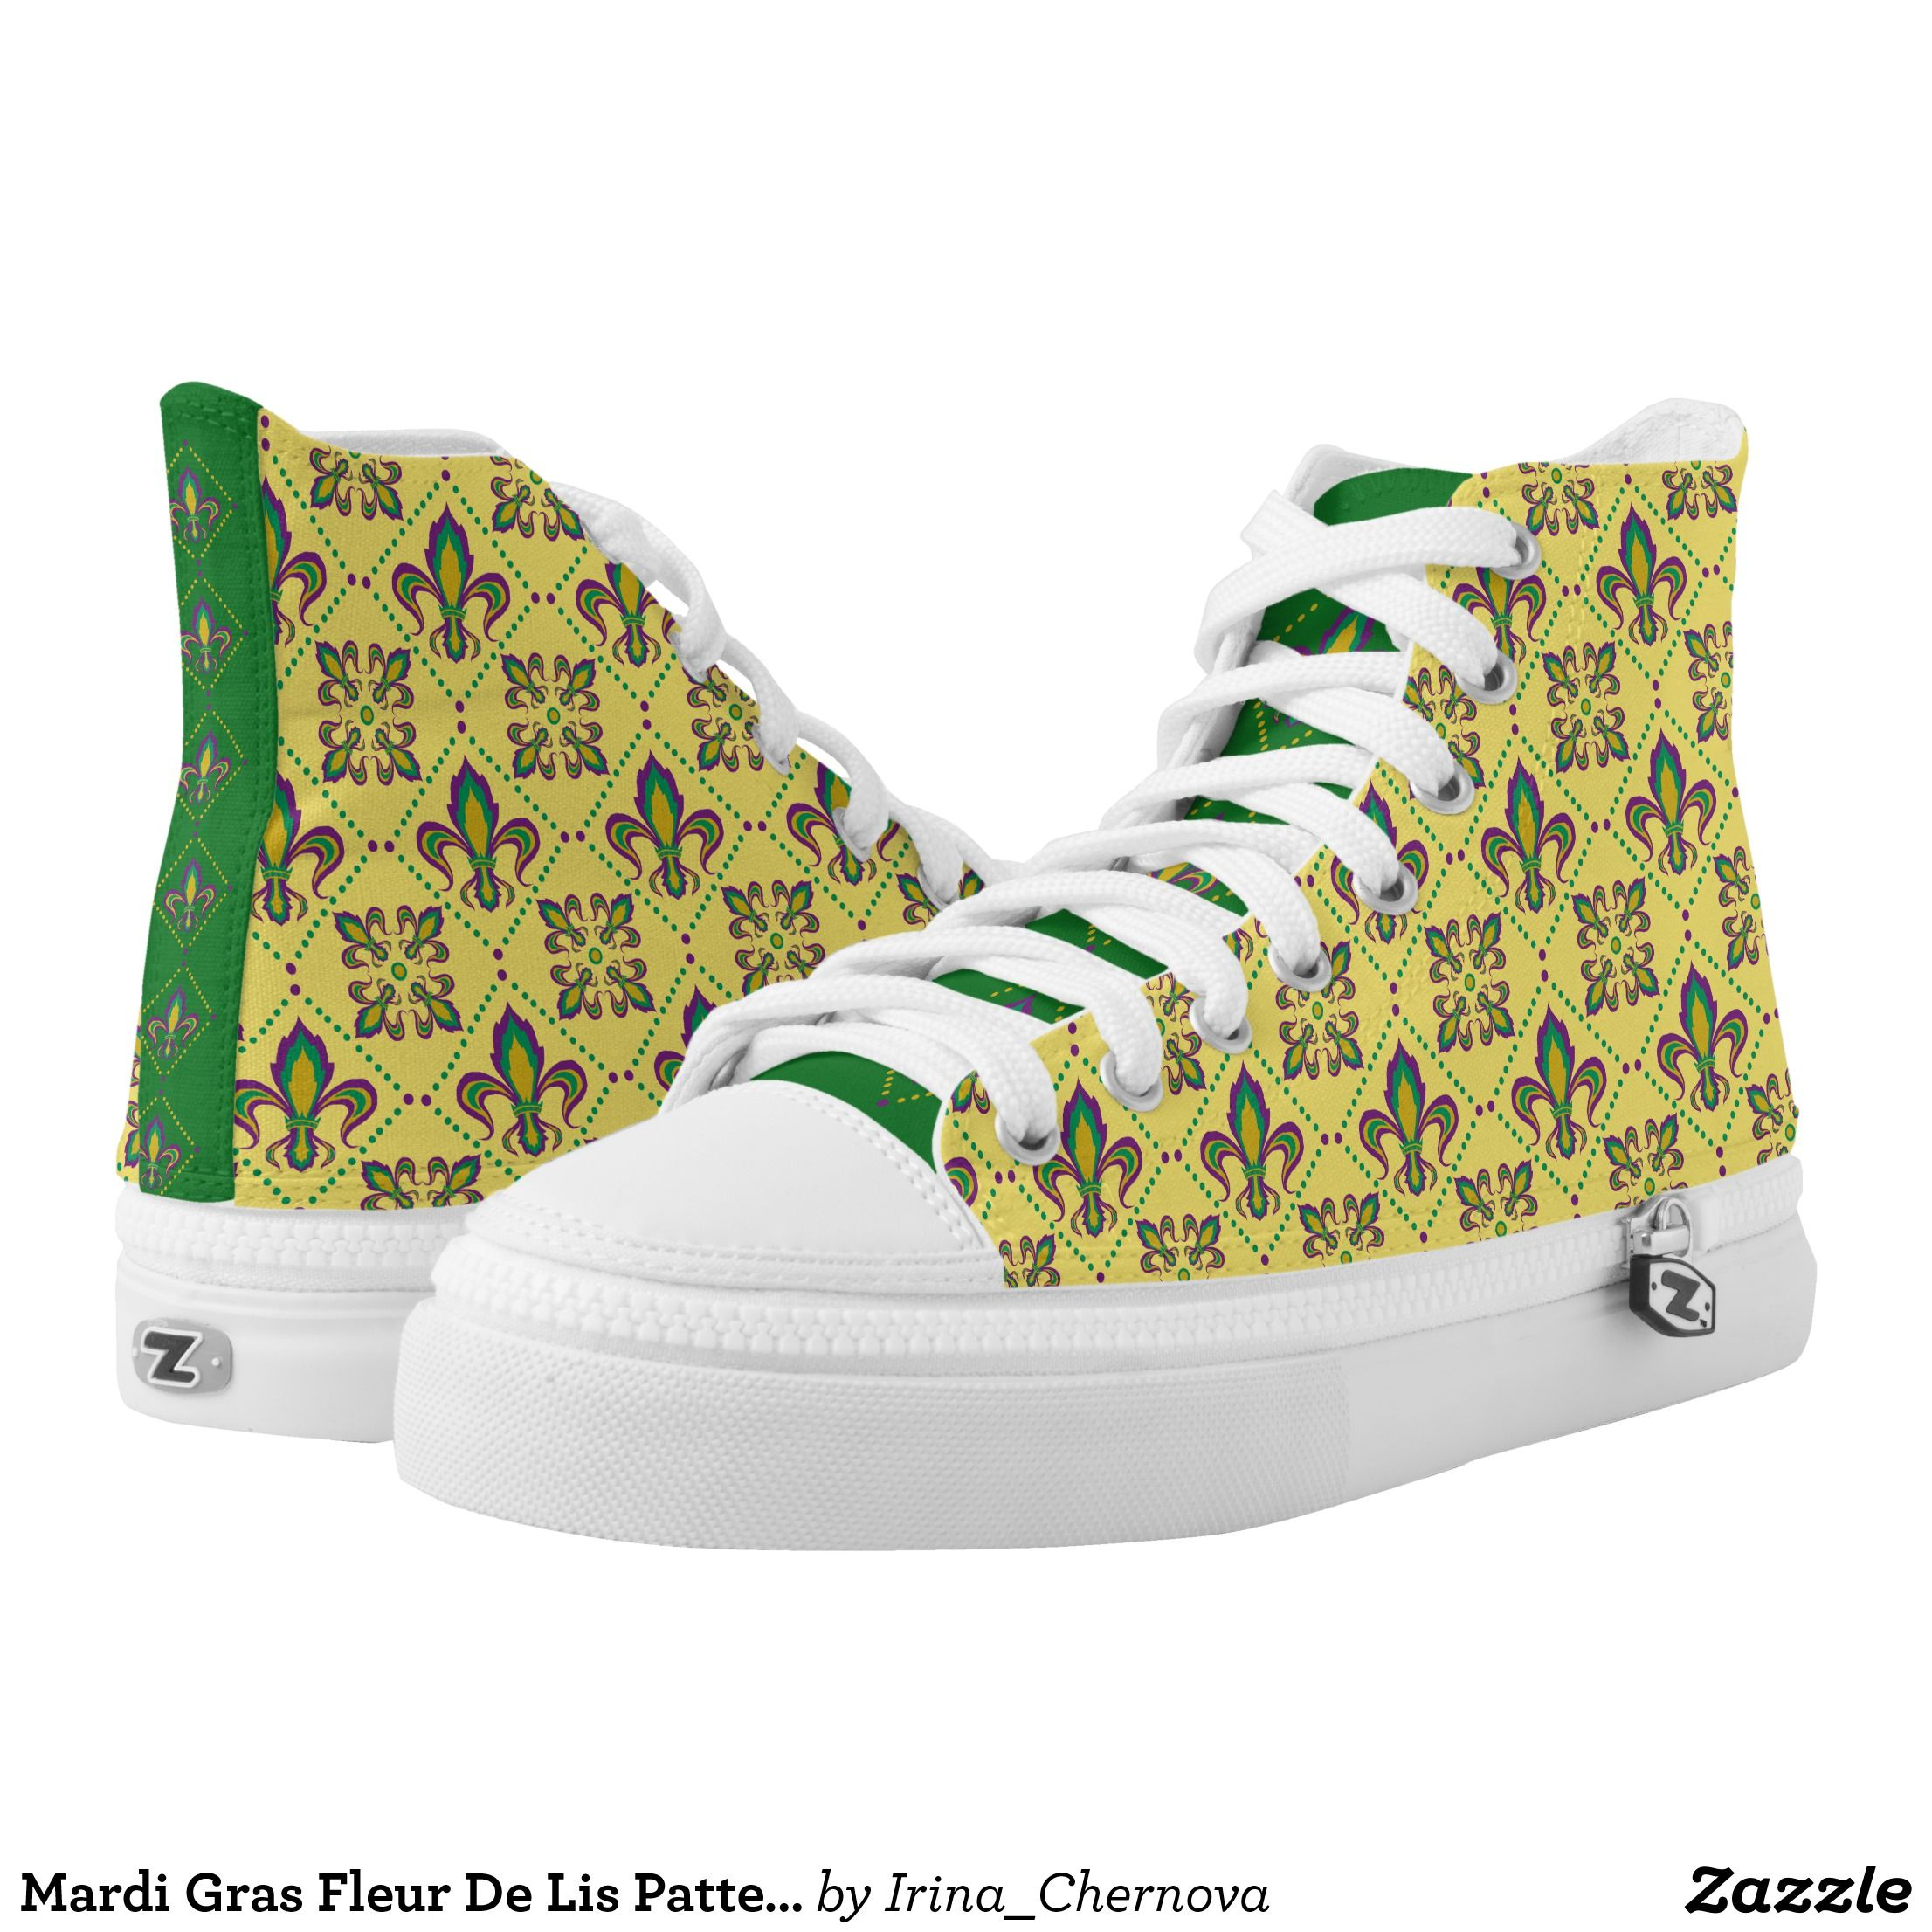 1f5b1f219fe6 Mardi Gras Fleur De Lis Pattern High-Top Sneakers - Canvas-Top Rubber-Sole  Athletic Shoes By Talented Fashion And Graphic Designers -  shoes  sneakers  ...